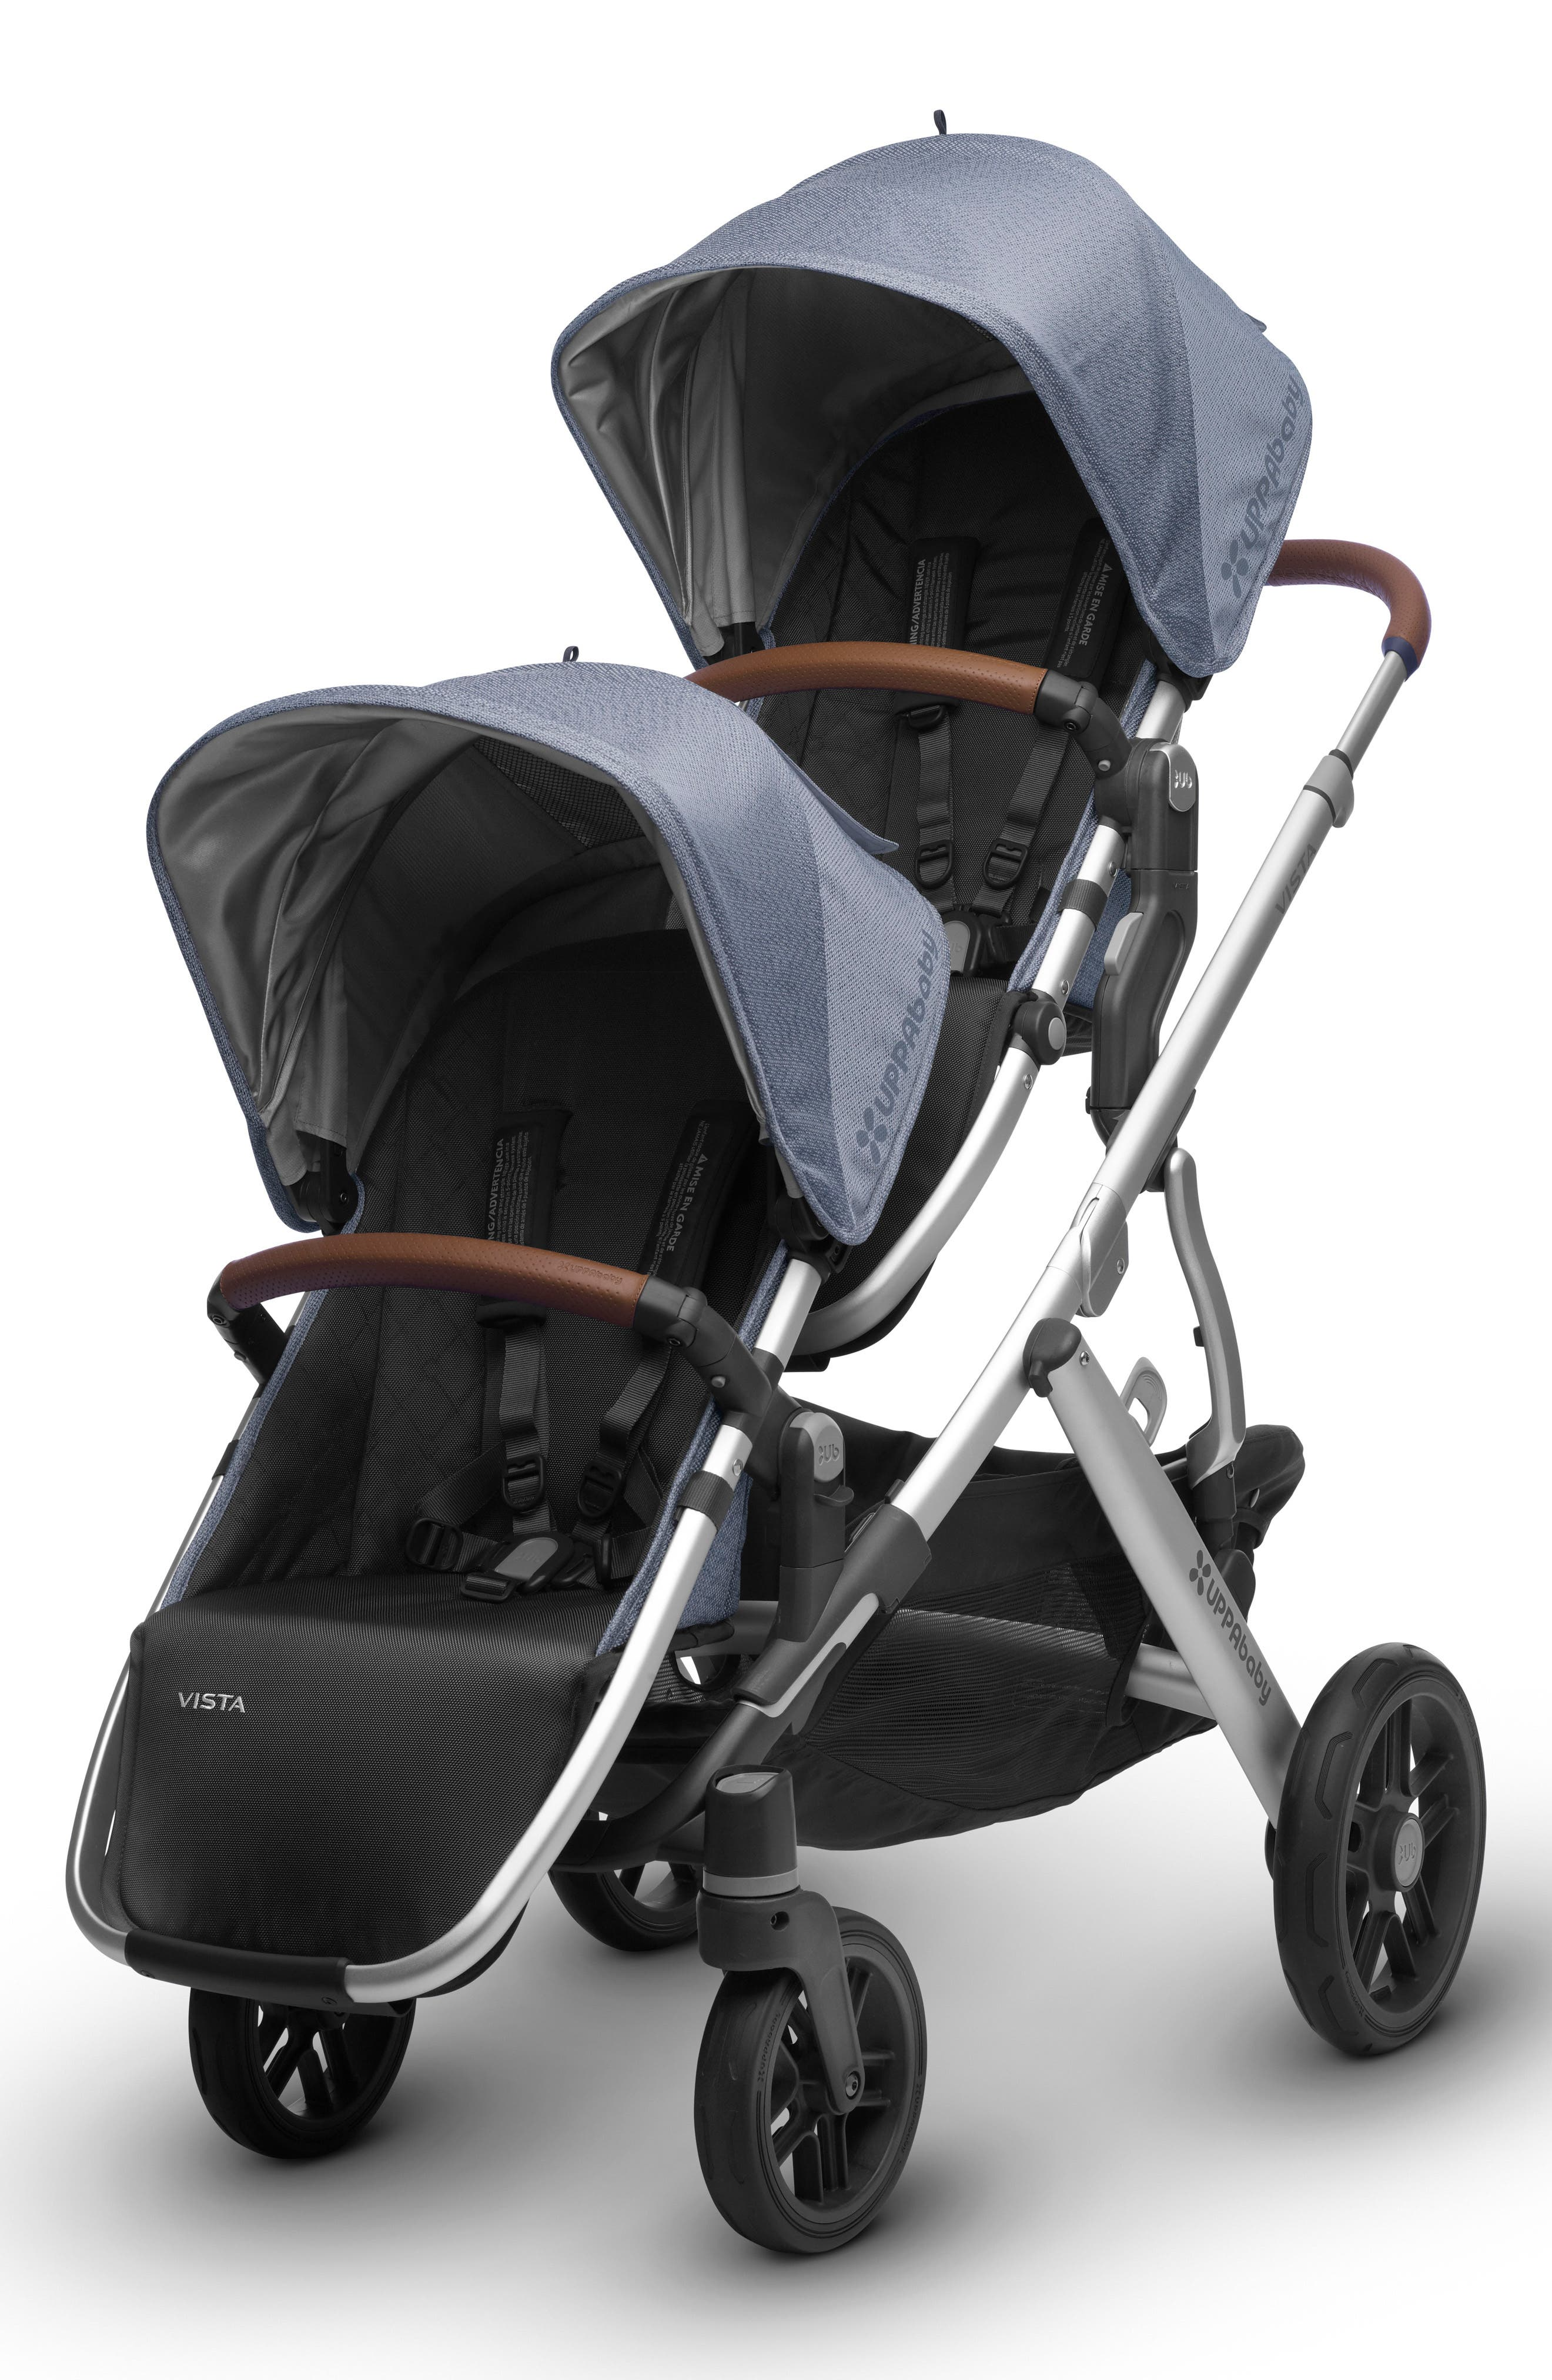 2017 Limited Edition Henry Rumble Seat for VISTA Stroller,                             Alternate thumbnail 2, color,                             411